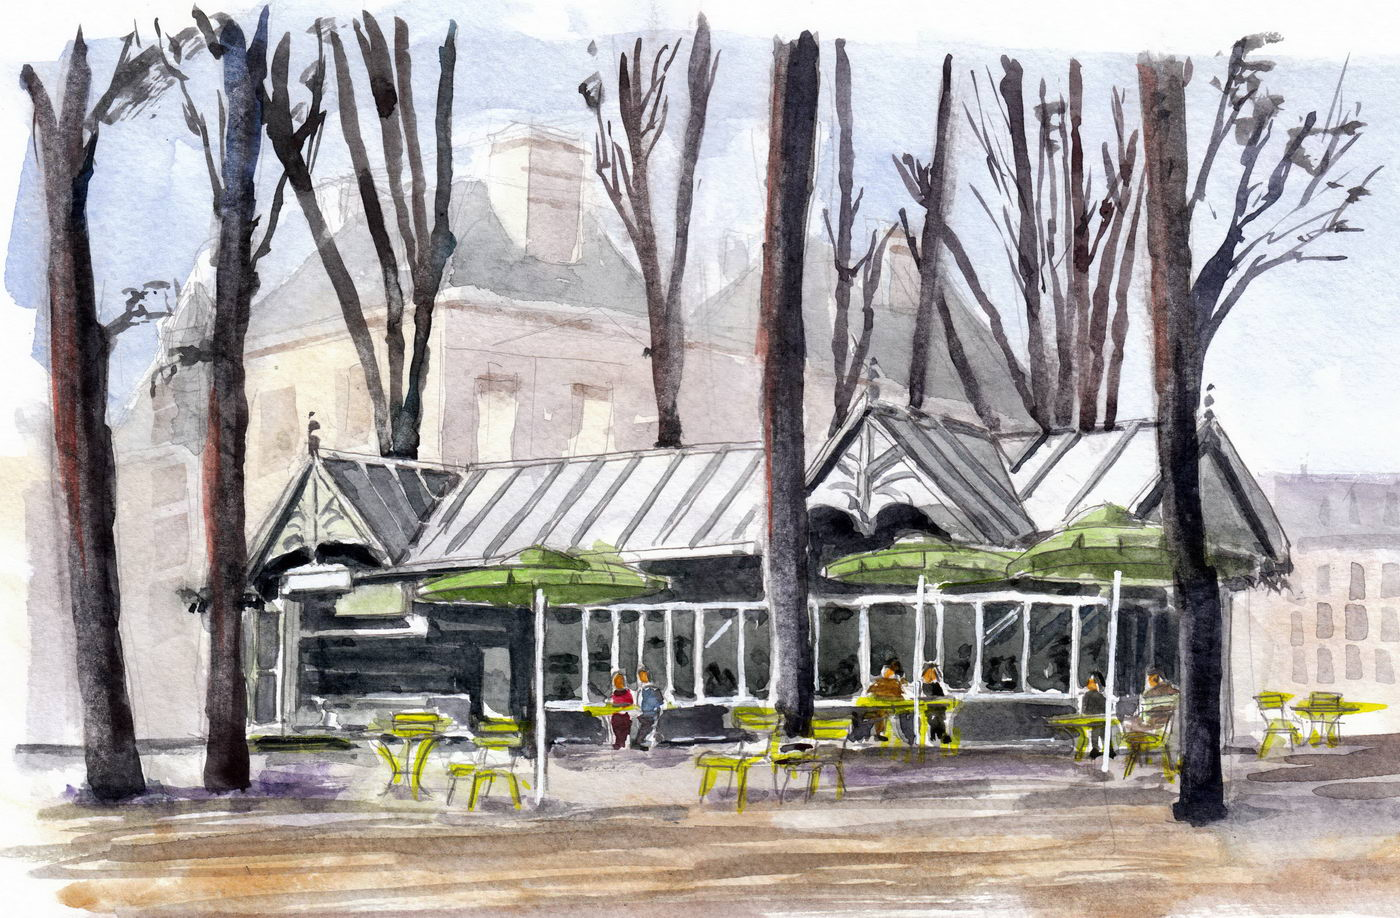 Caf du jardin du luxembourg paris michel colson for Cafe du jardin london